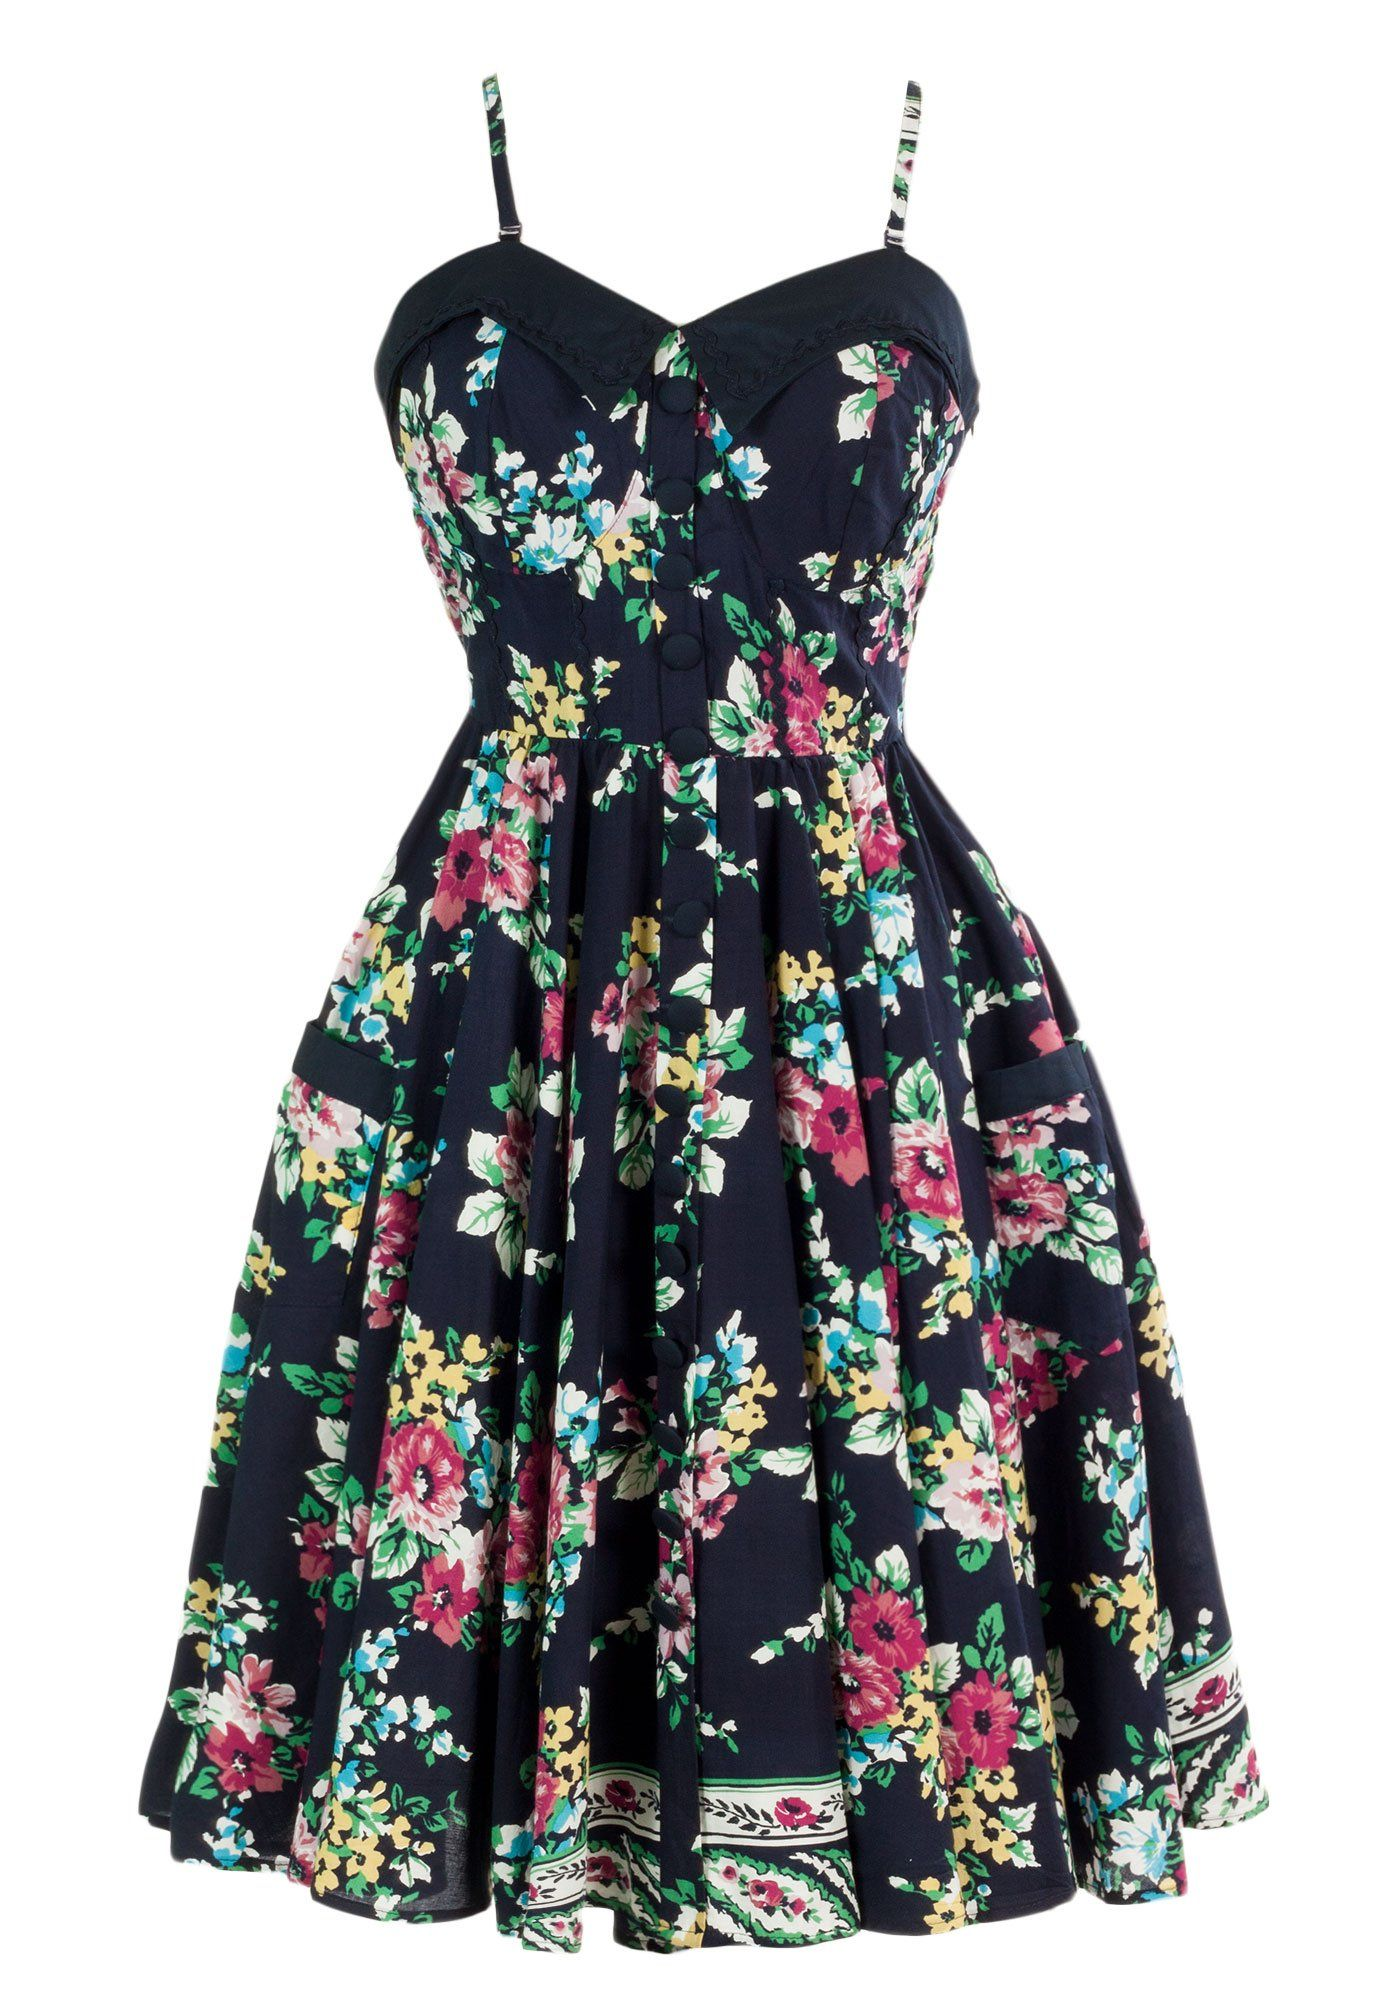 Sidecca Floral Garden Rick Rack Fold Over Dress at Amazon Women's Clothing store: